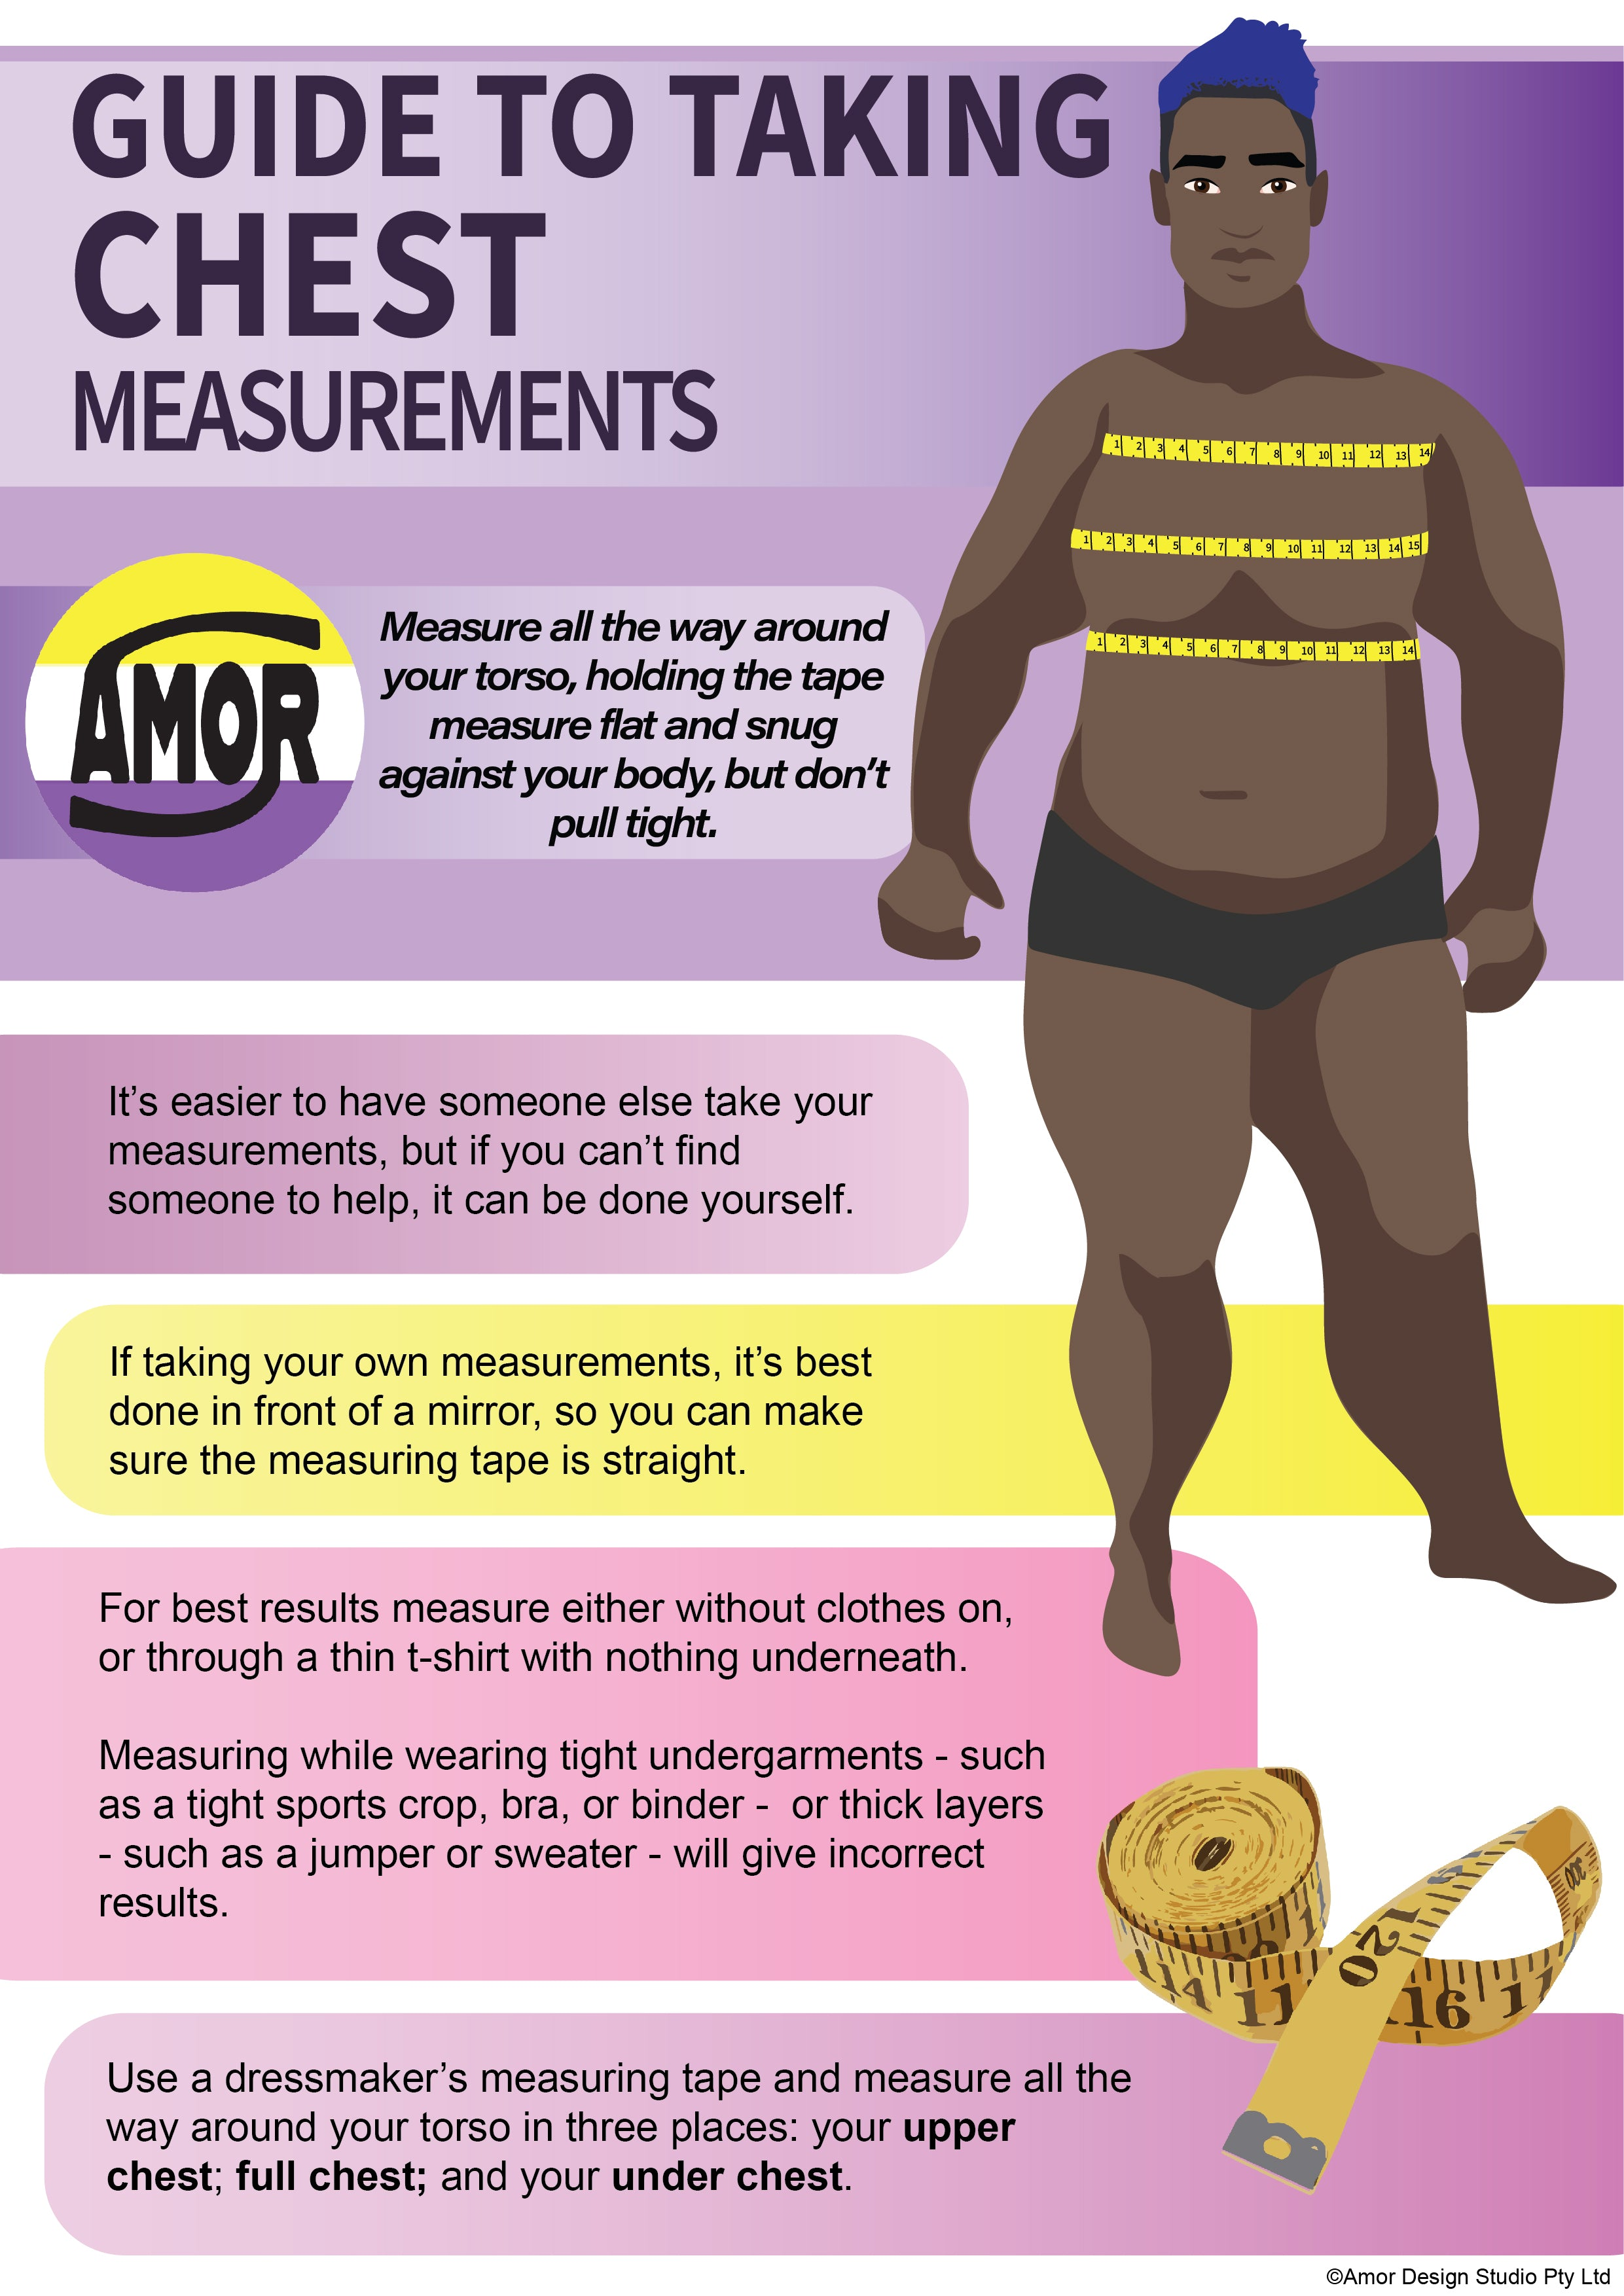 Guide To Taking Chest Measurements  Measure all the way around your torso, holding the tape measure flat and snug against your body, but don't pull tight.  It's easier to have someone else take your measurements, but if you can't find someone to help, it can be done yourself.  If taking your own measurements, it's best done in front of a mirror, so you can make sure the measuring tape is straight.  For best results measure either without clothes on, or through a thin t-shirt with nothing underneath. Measuring while wearing tight undergarments - such as a tight sports crop, bra, or binder - or thick layers - such as a jumper or sweater - will give incorrect results.  Use a dressmaker's measuring tape and measure all the way around your torso in three places: your upper chest; full chest; and your under chest.